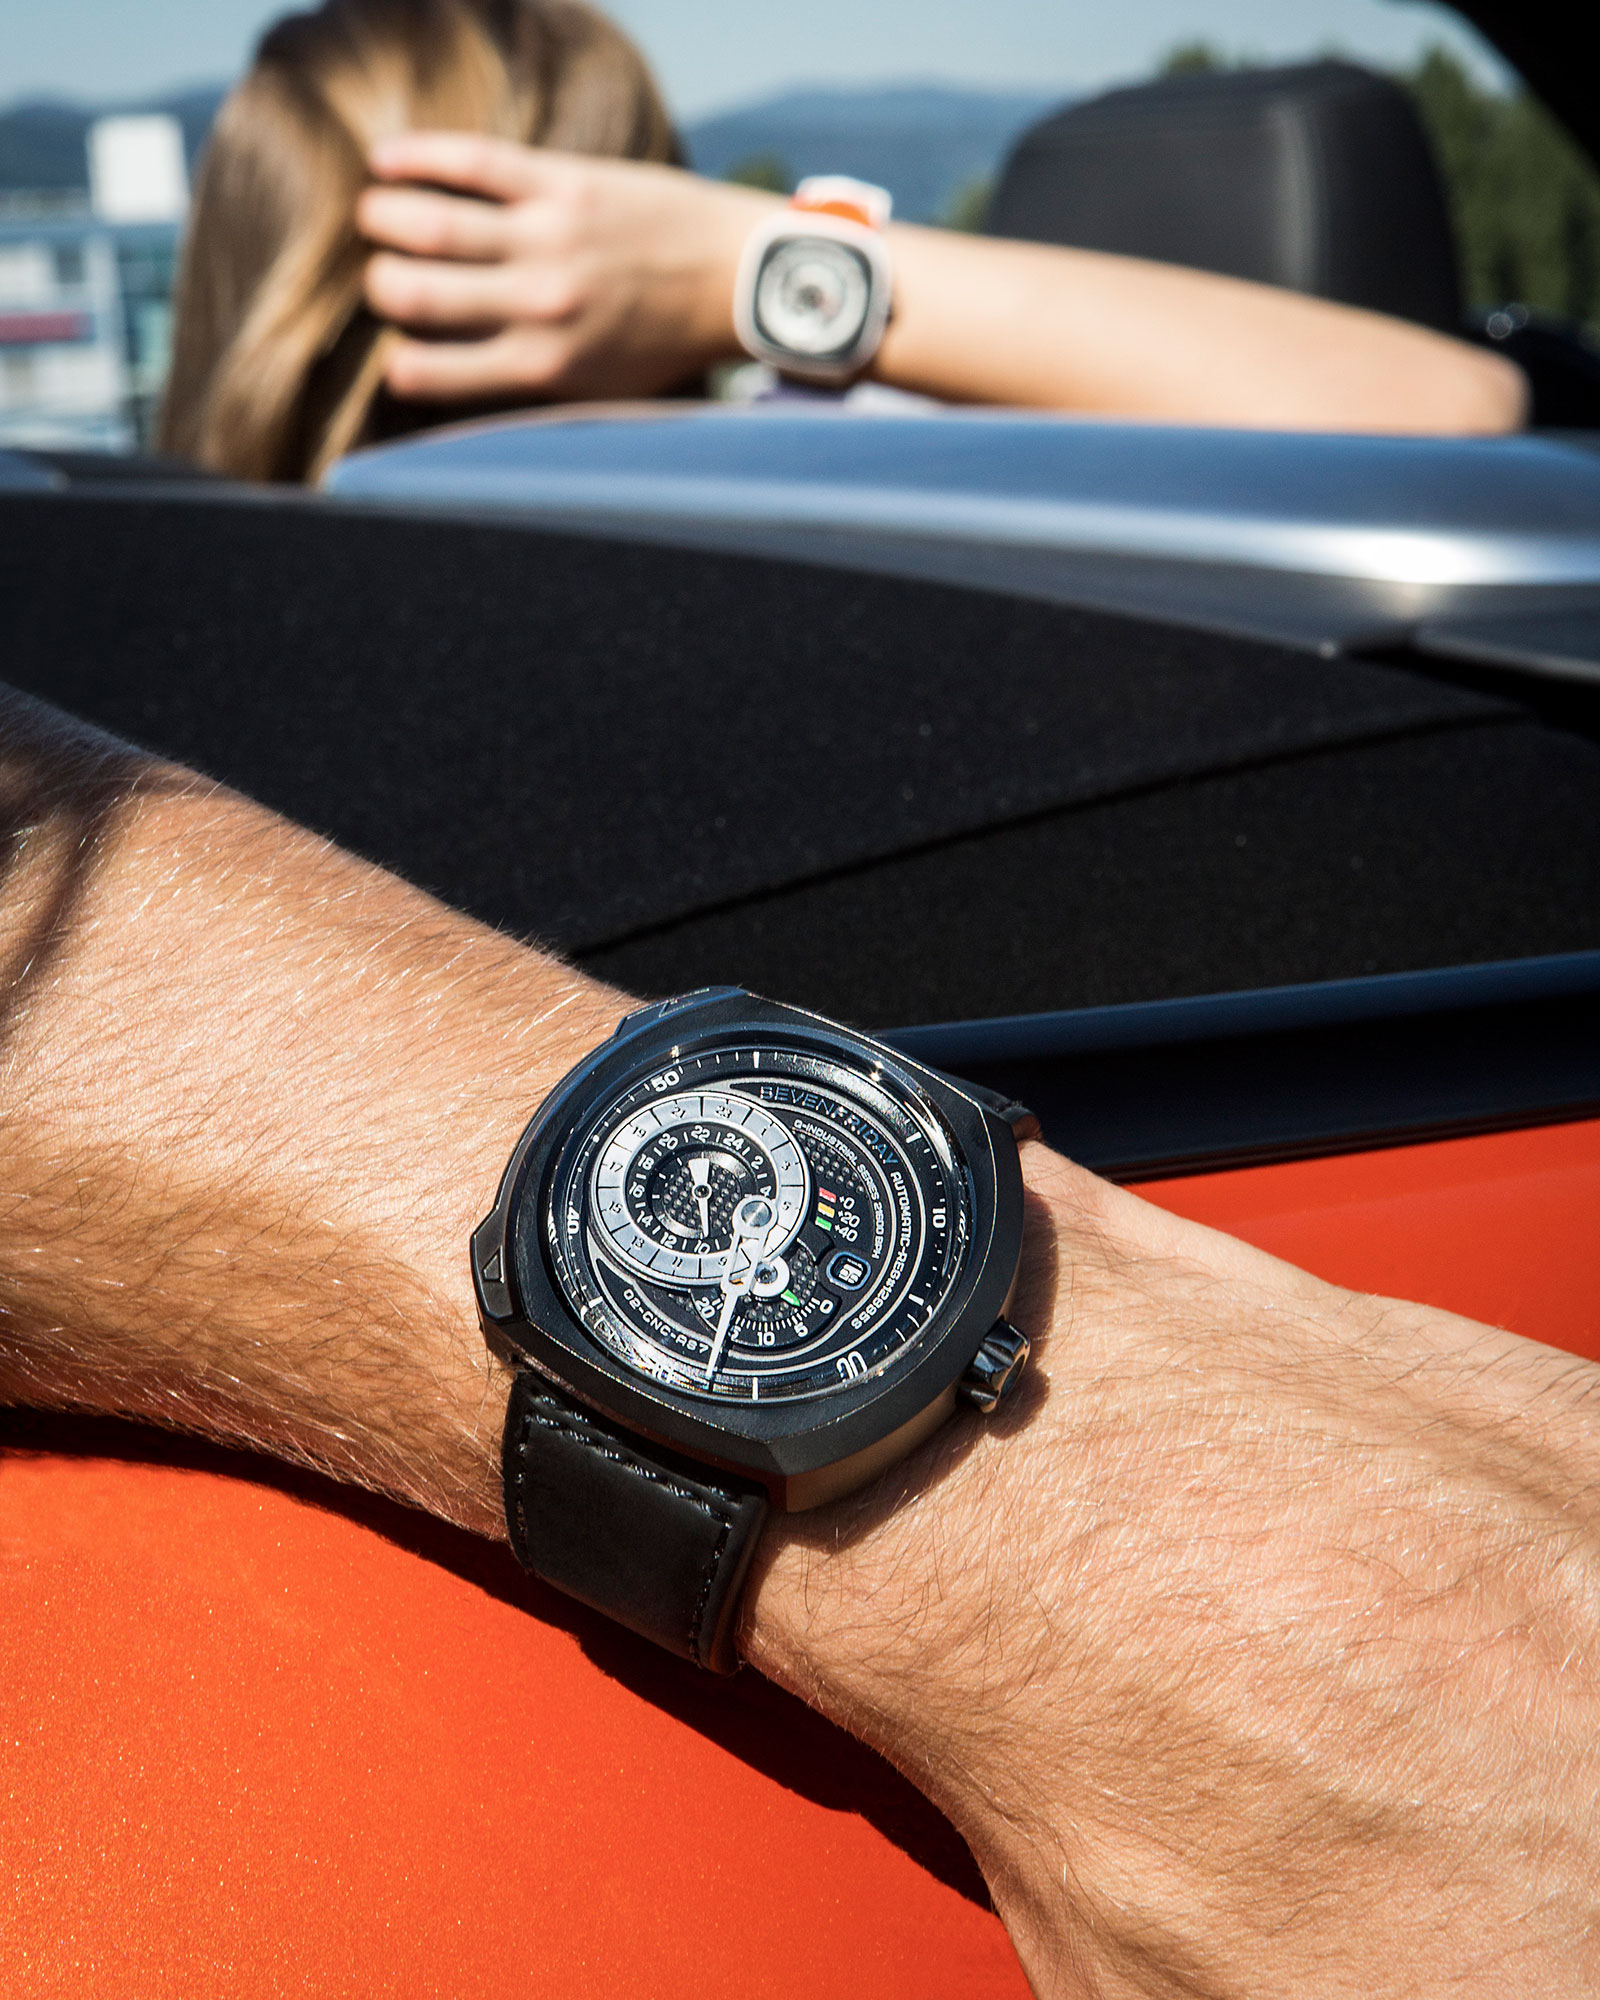 SevenFriday Q-3 wrist shot